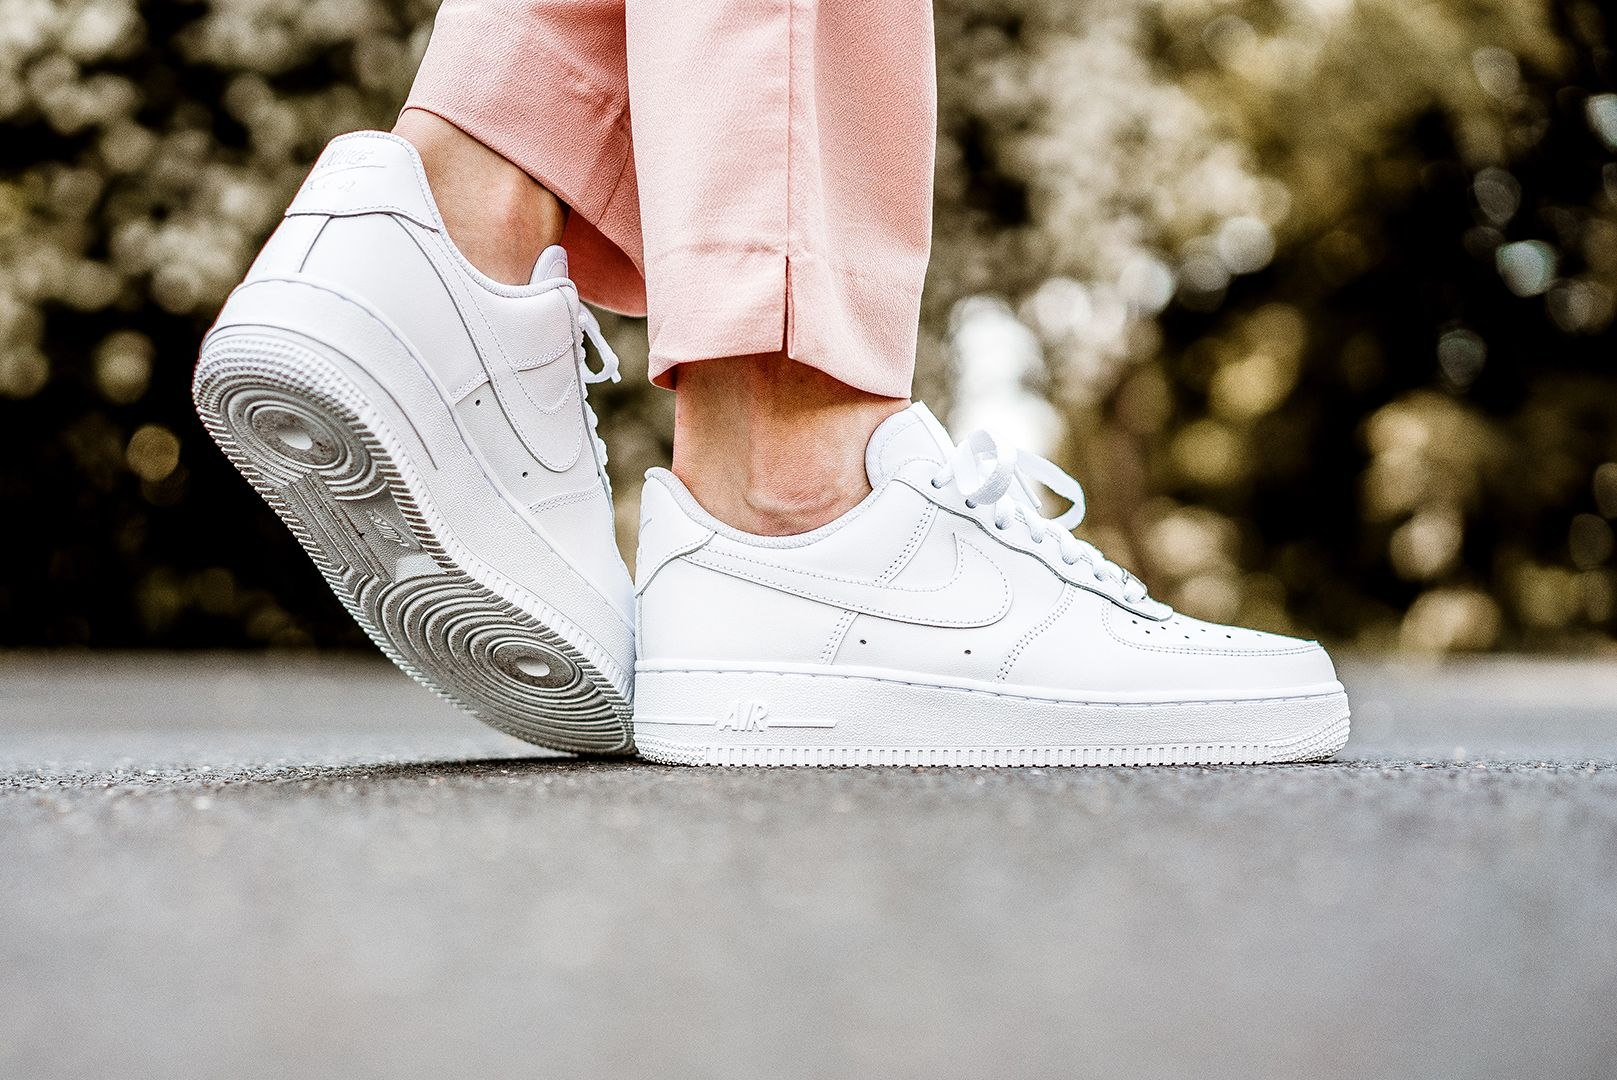 Nike WMNS Air Force 1 '07 (white) – 2019